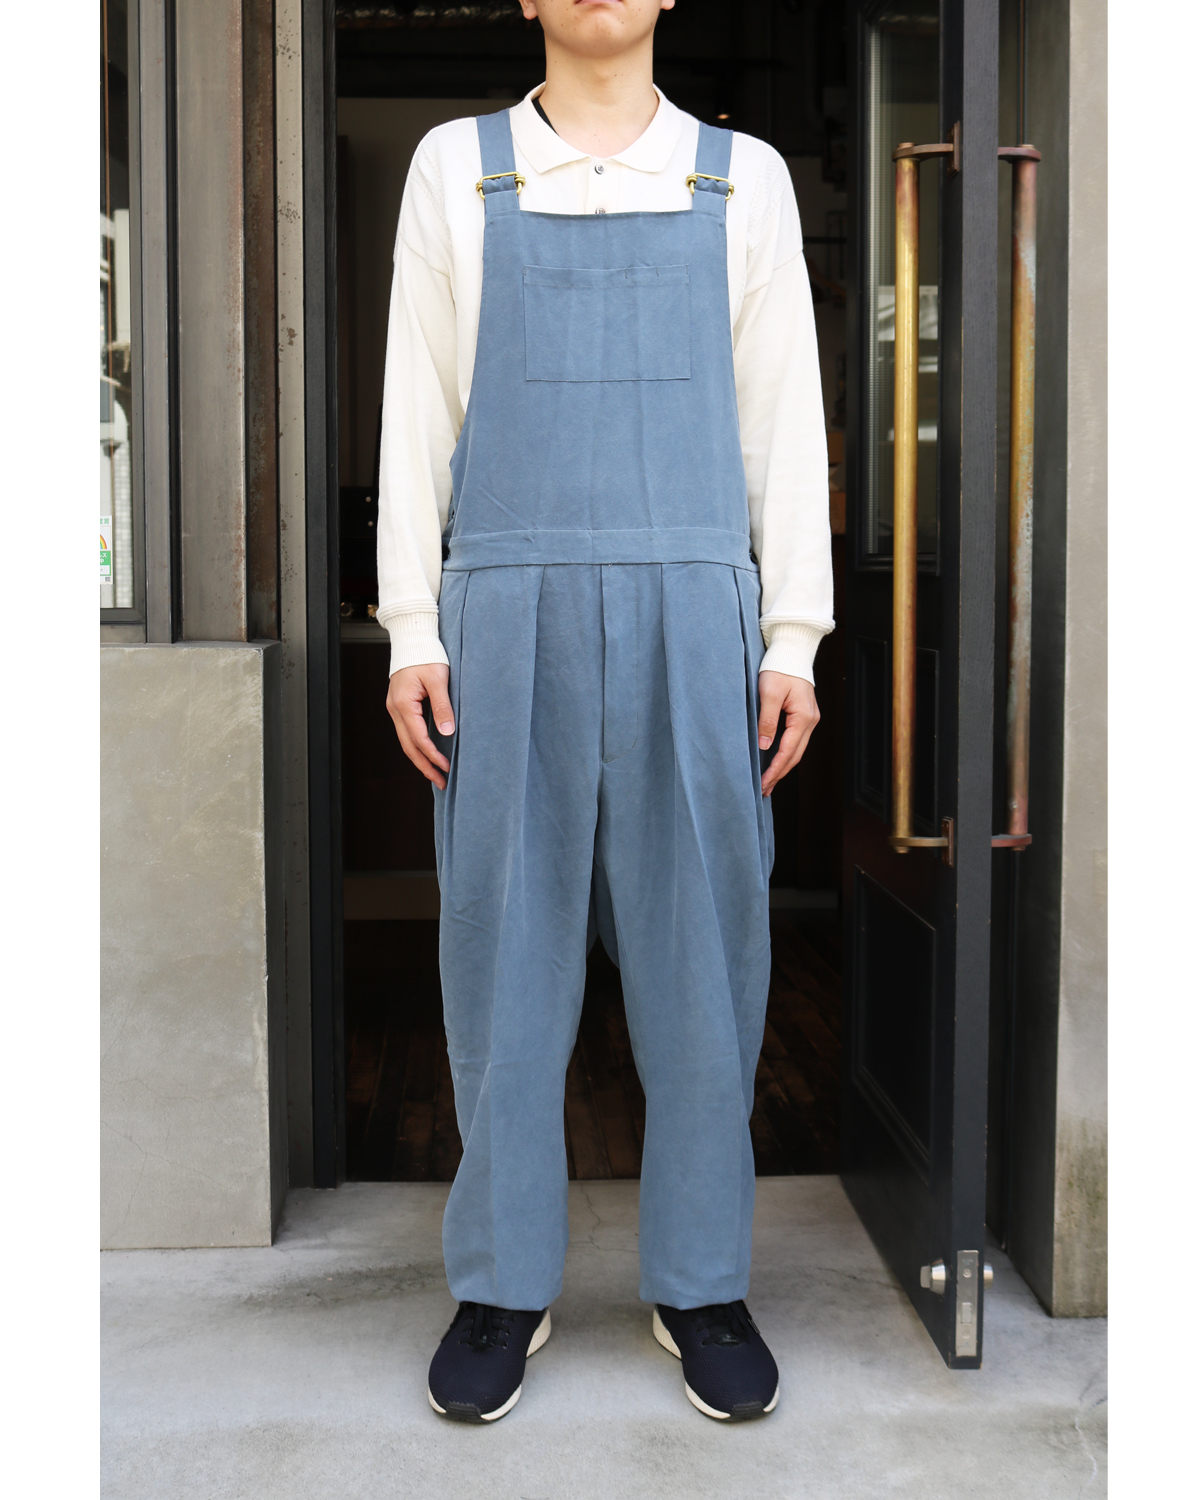 CELLULOSE NIDOM|OVERALL - Blue Gray|NEAT